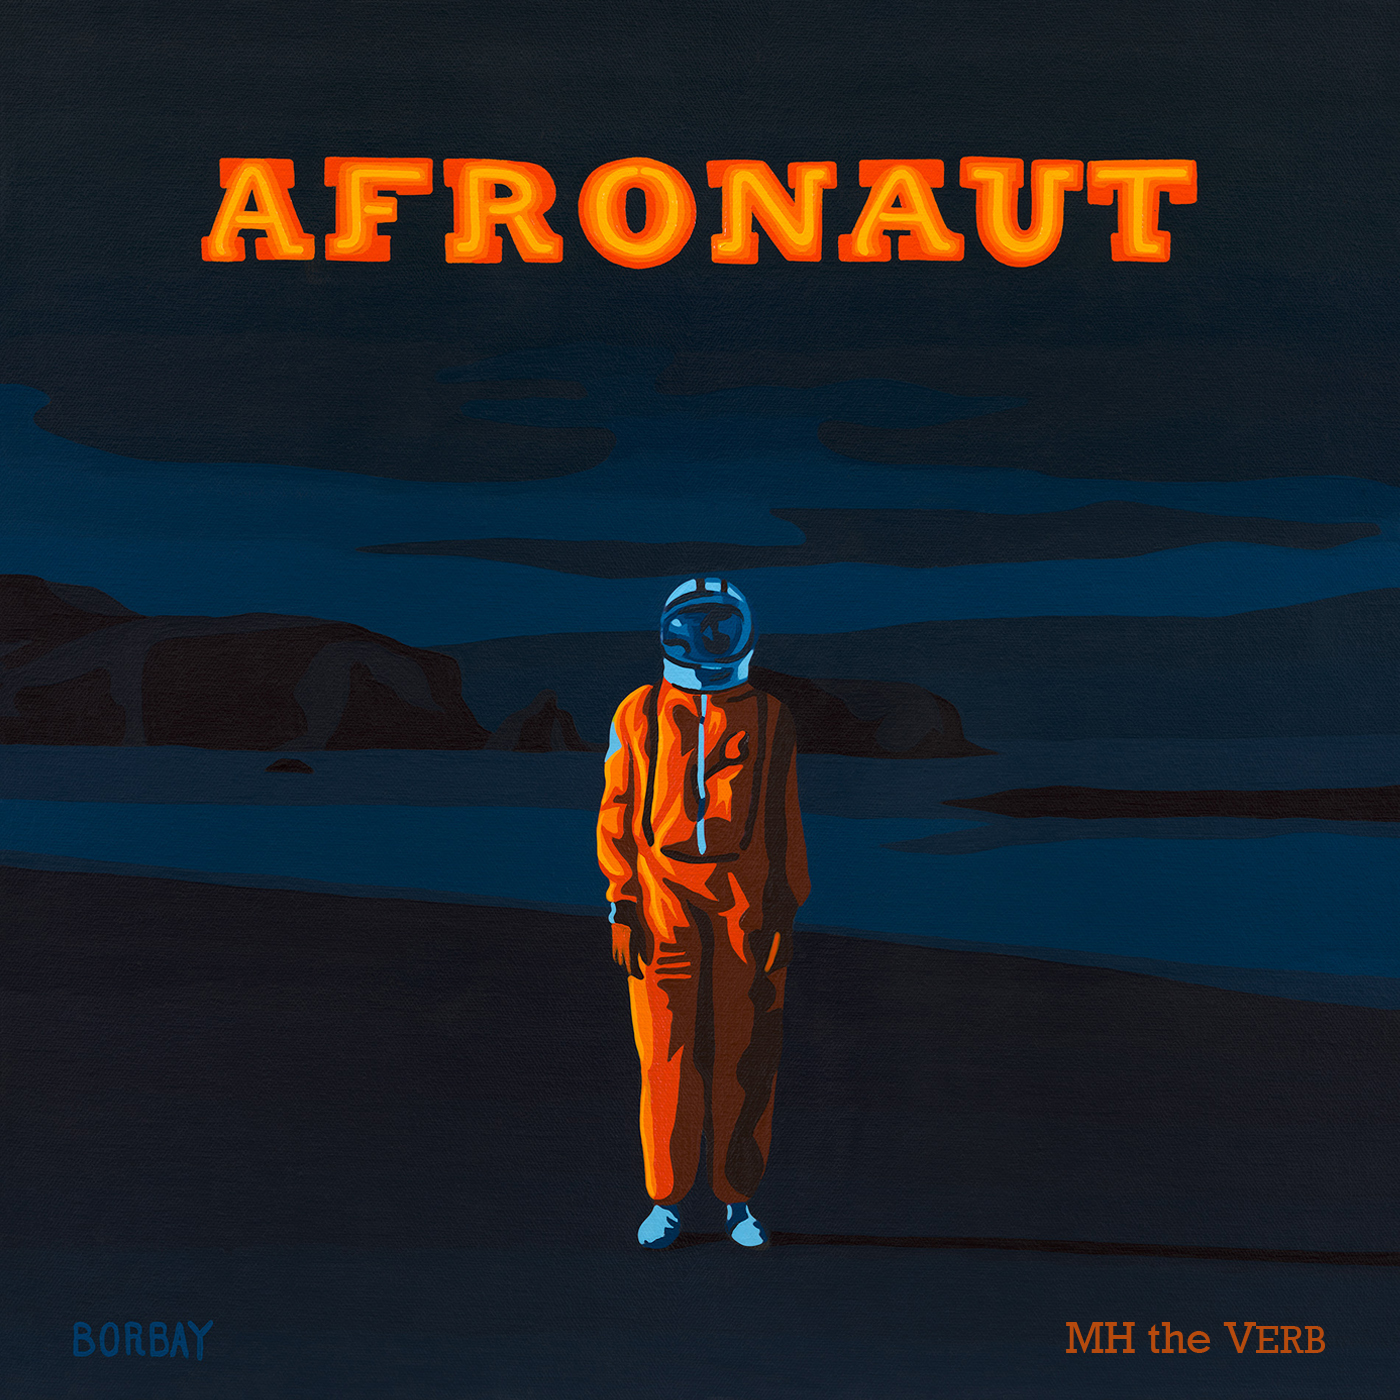 MH the Verb - Afronaut (2017) - Album Art